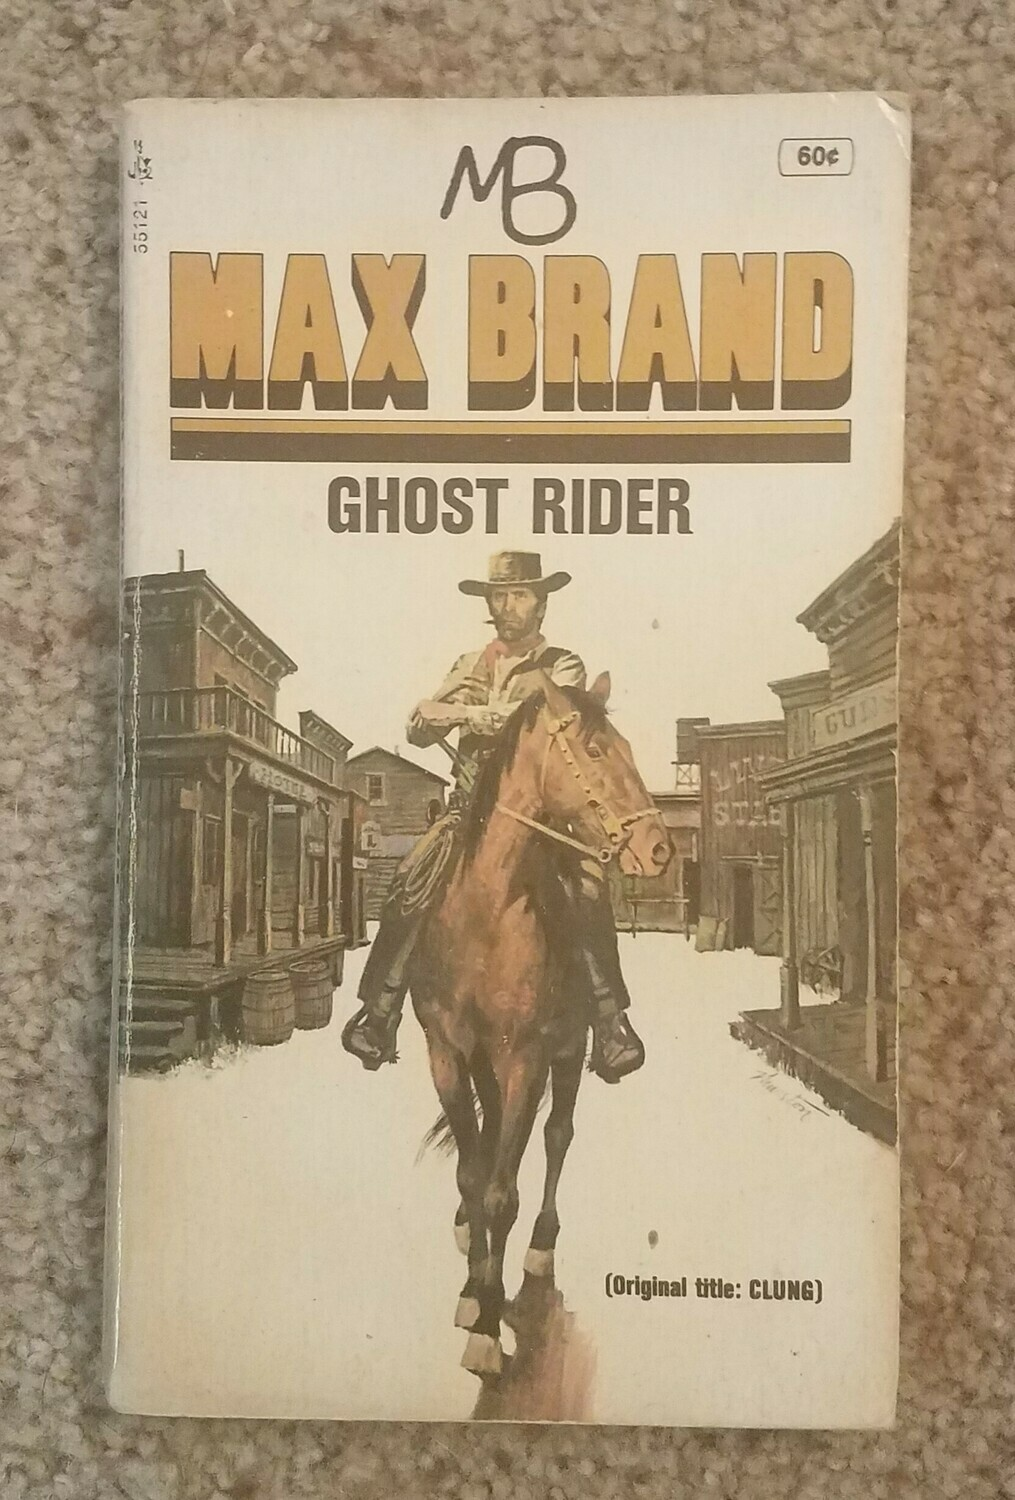 Ghost Rider by Max Brand